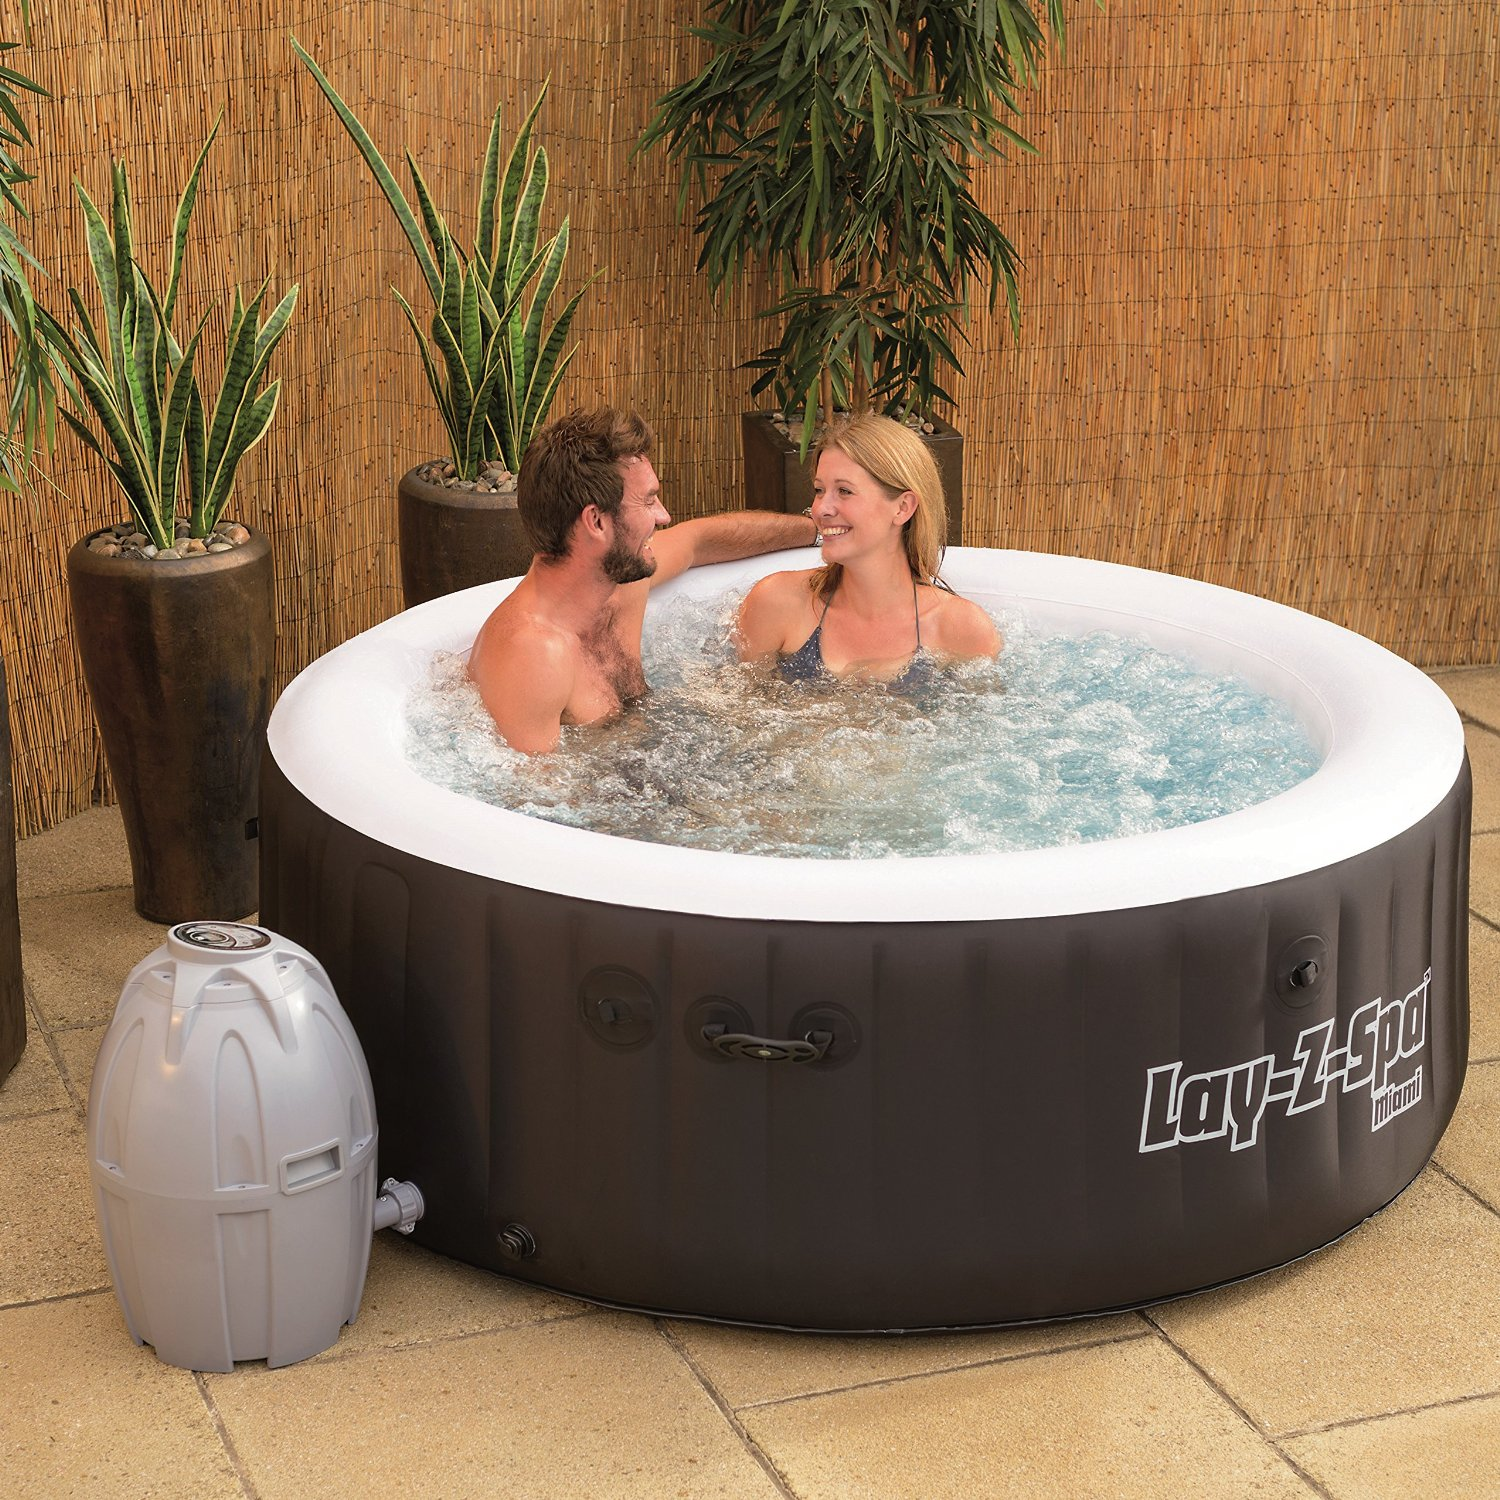 Top 3 best 2 person inflatable hot tubs laze up - Soft tube whirlpool ...